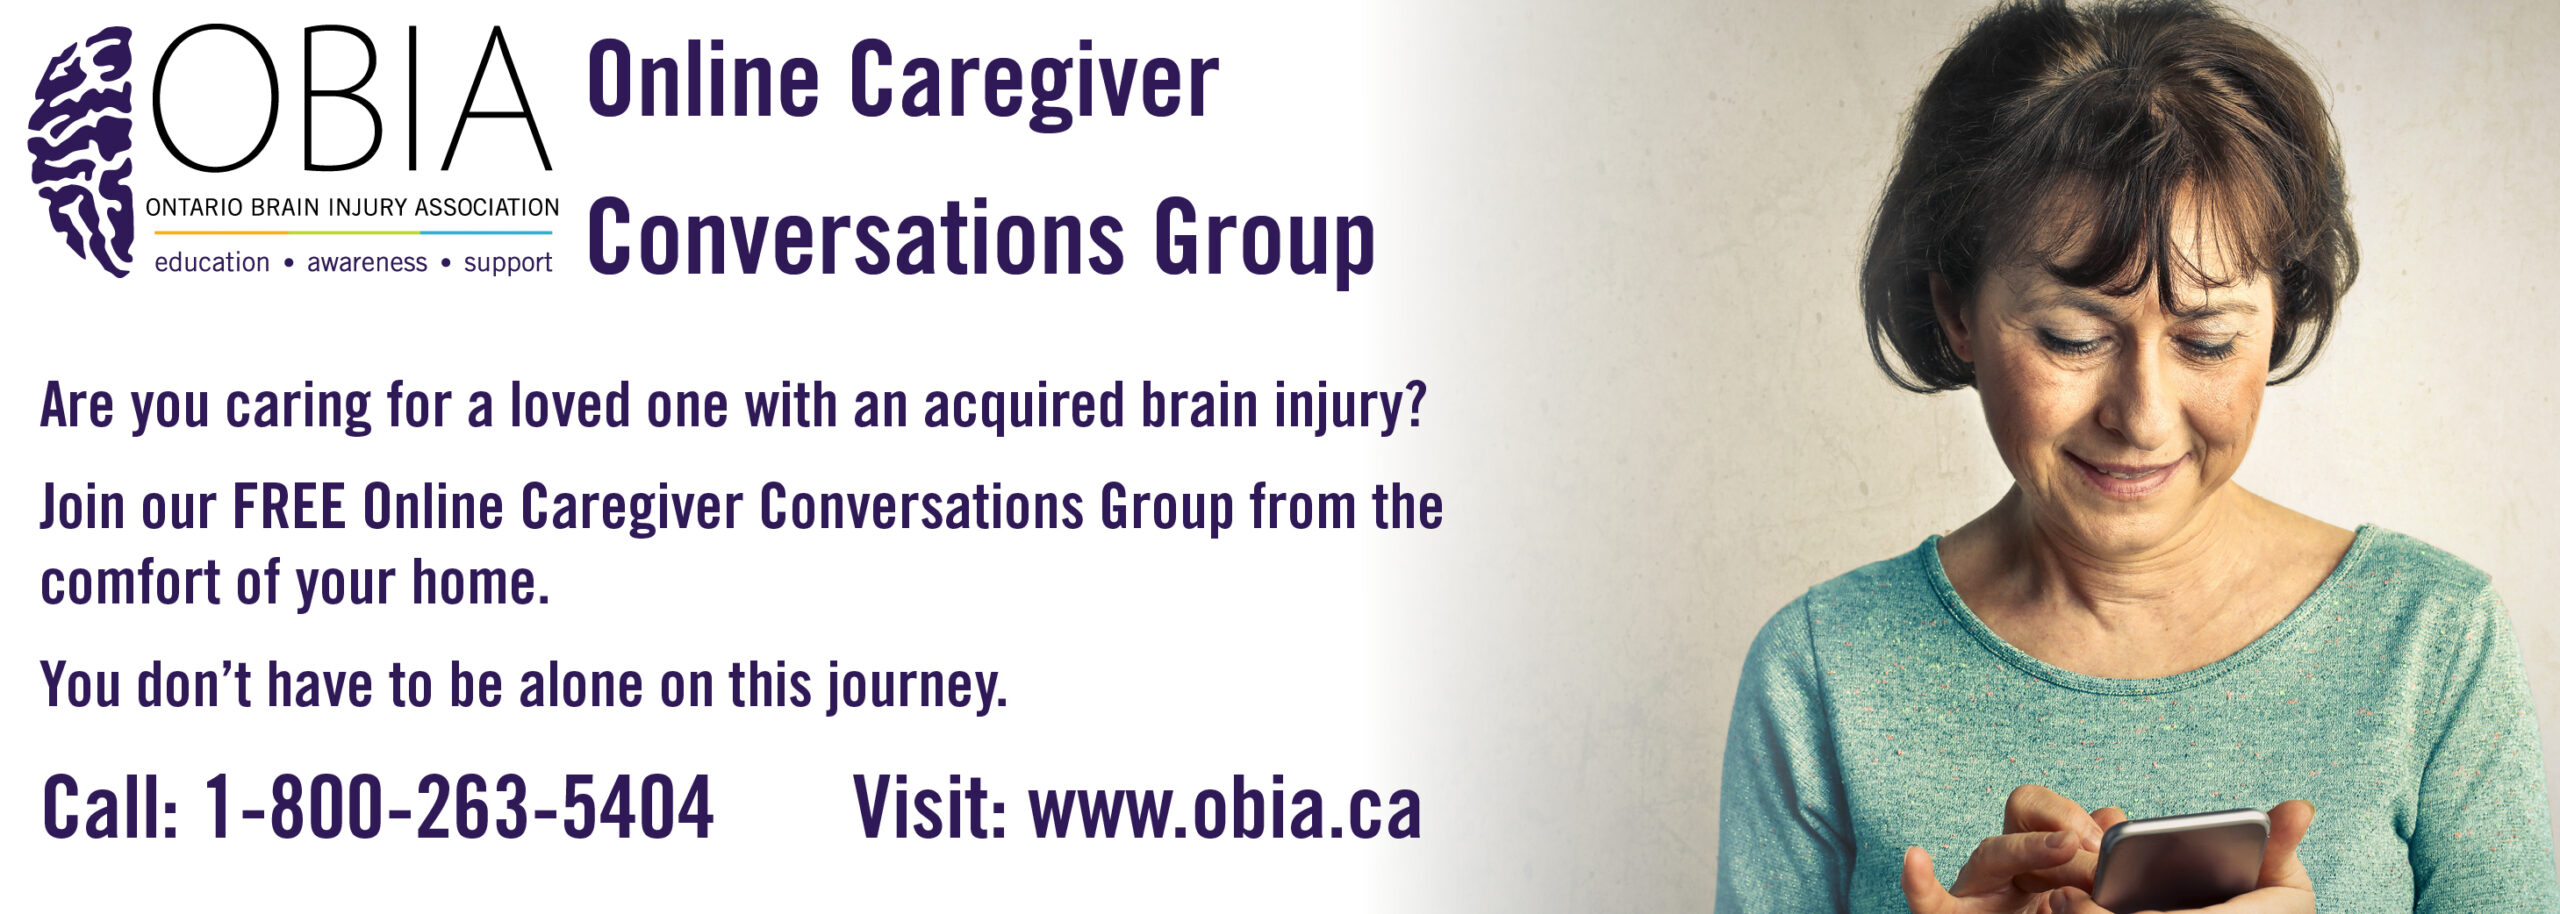 caregiver conversations banner for website